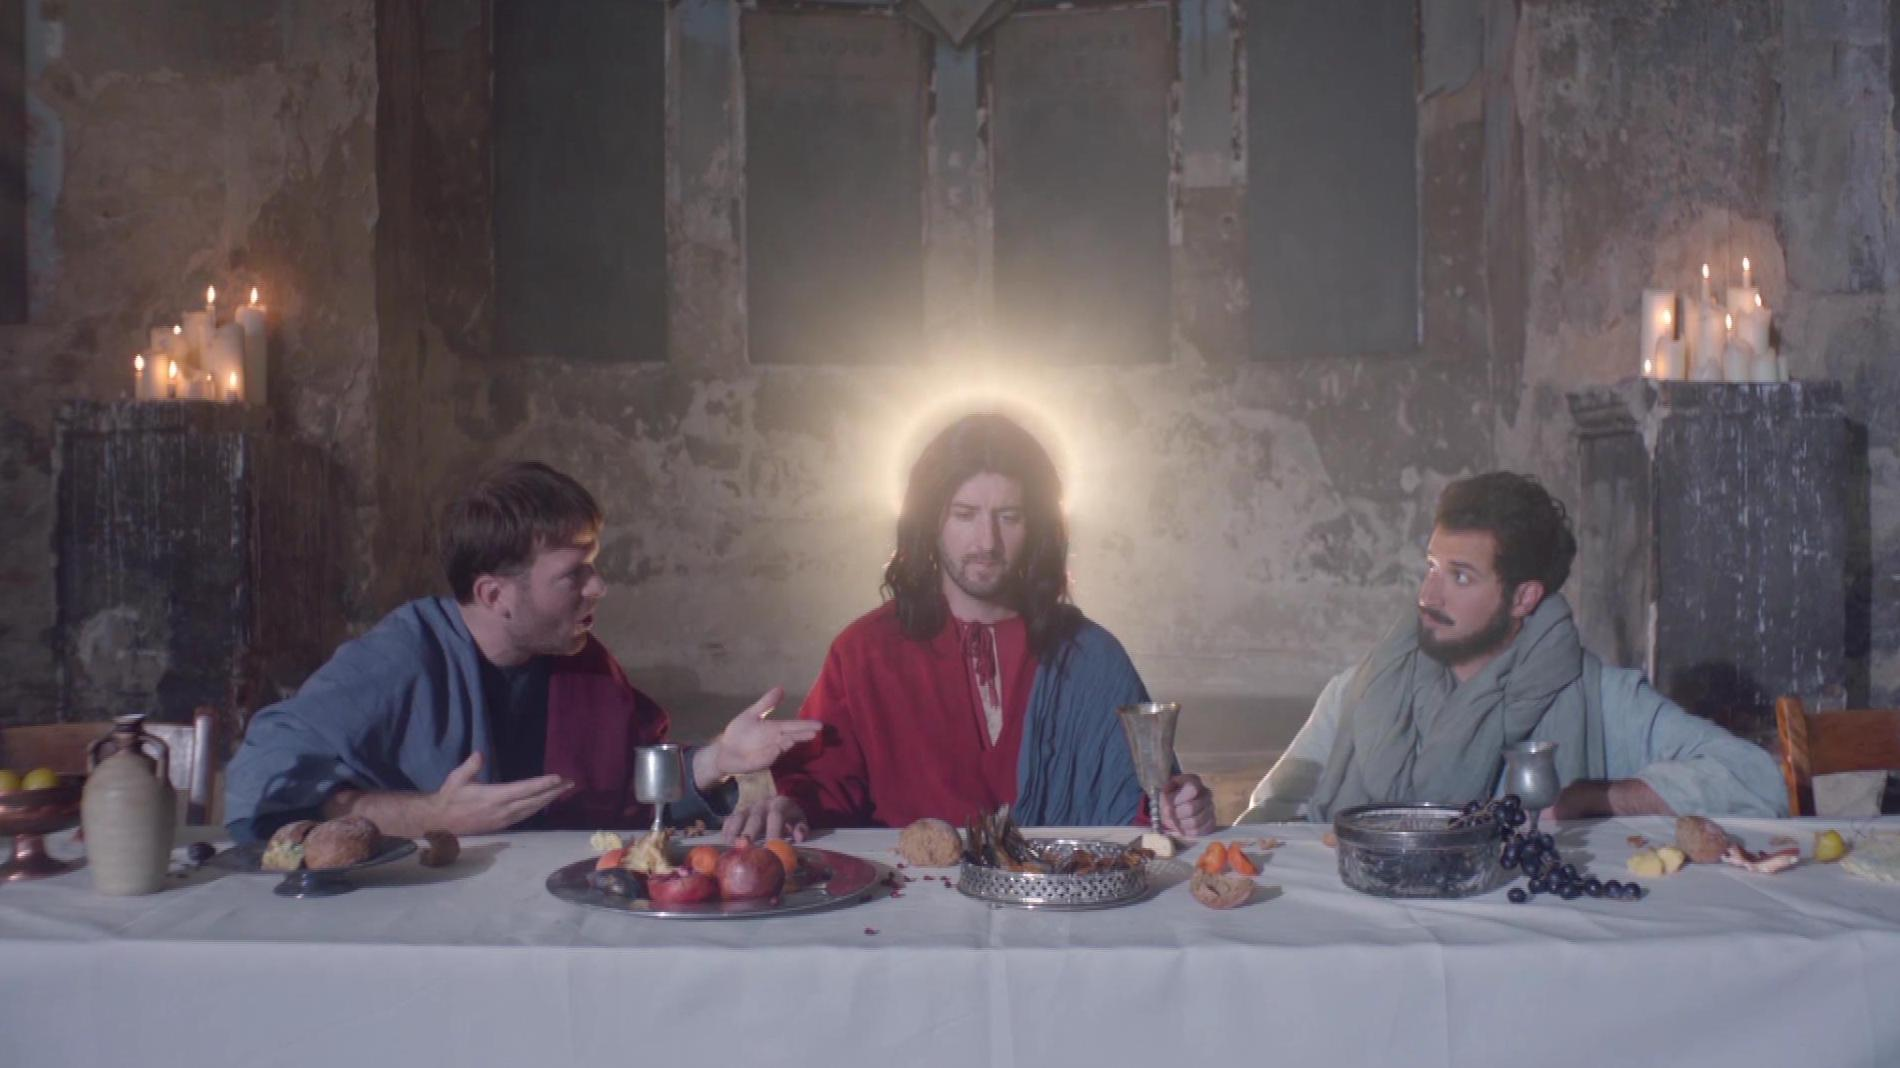 The last working supper.